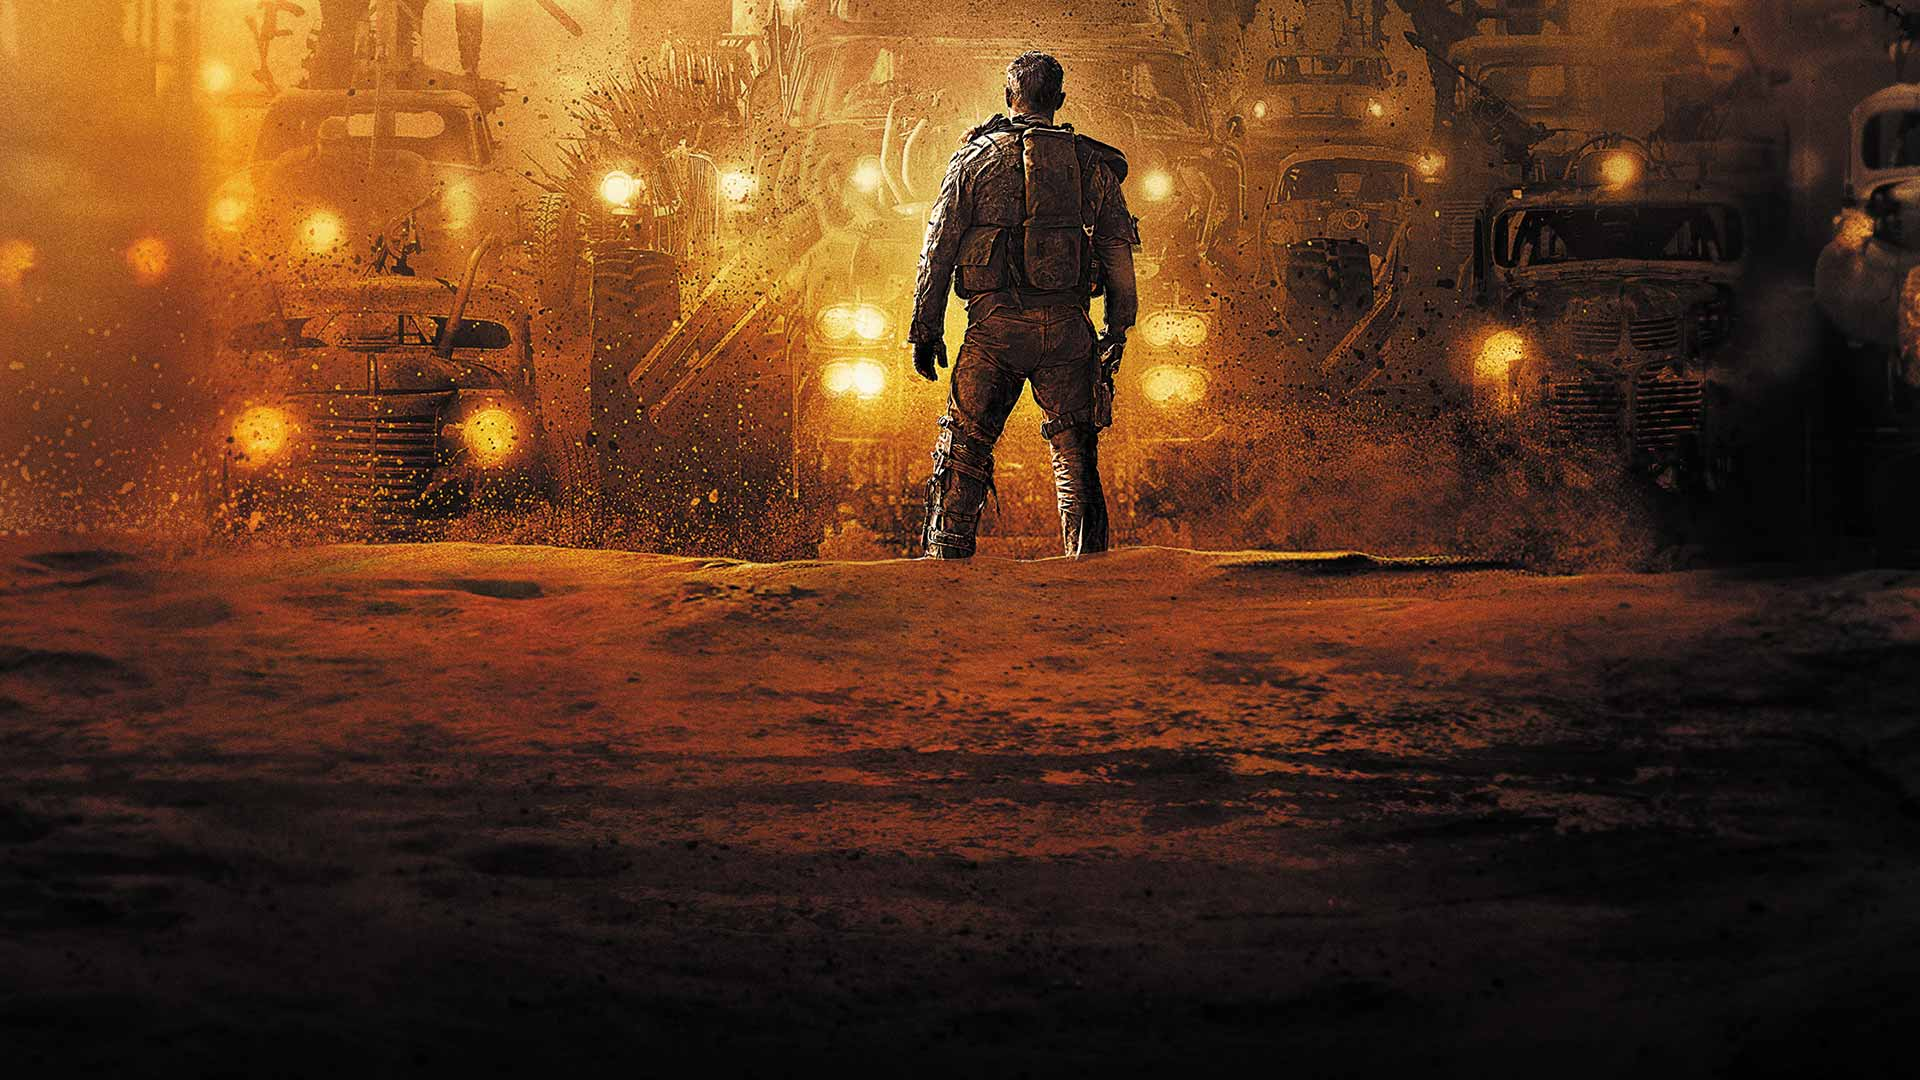 Mad Max Fury Road Hd Wallpapers 7wallpapers Net